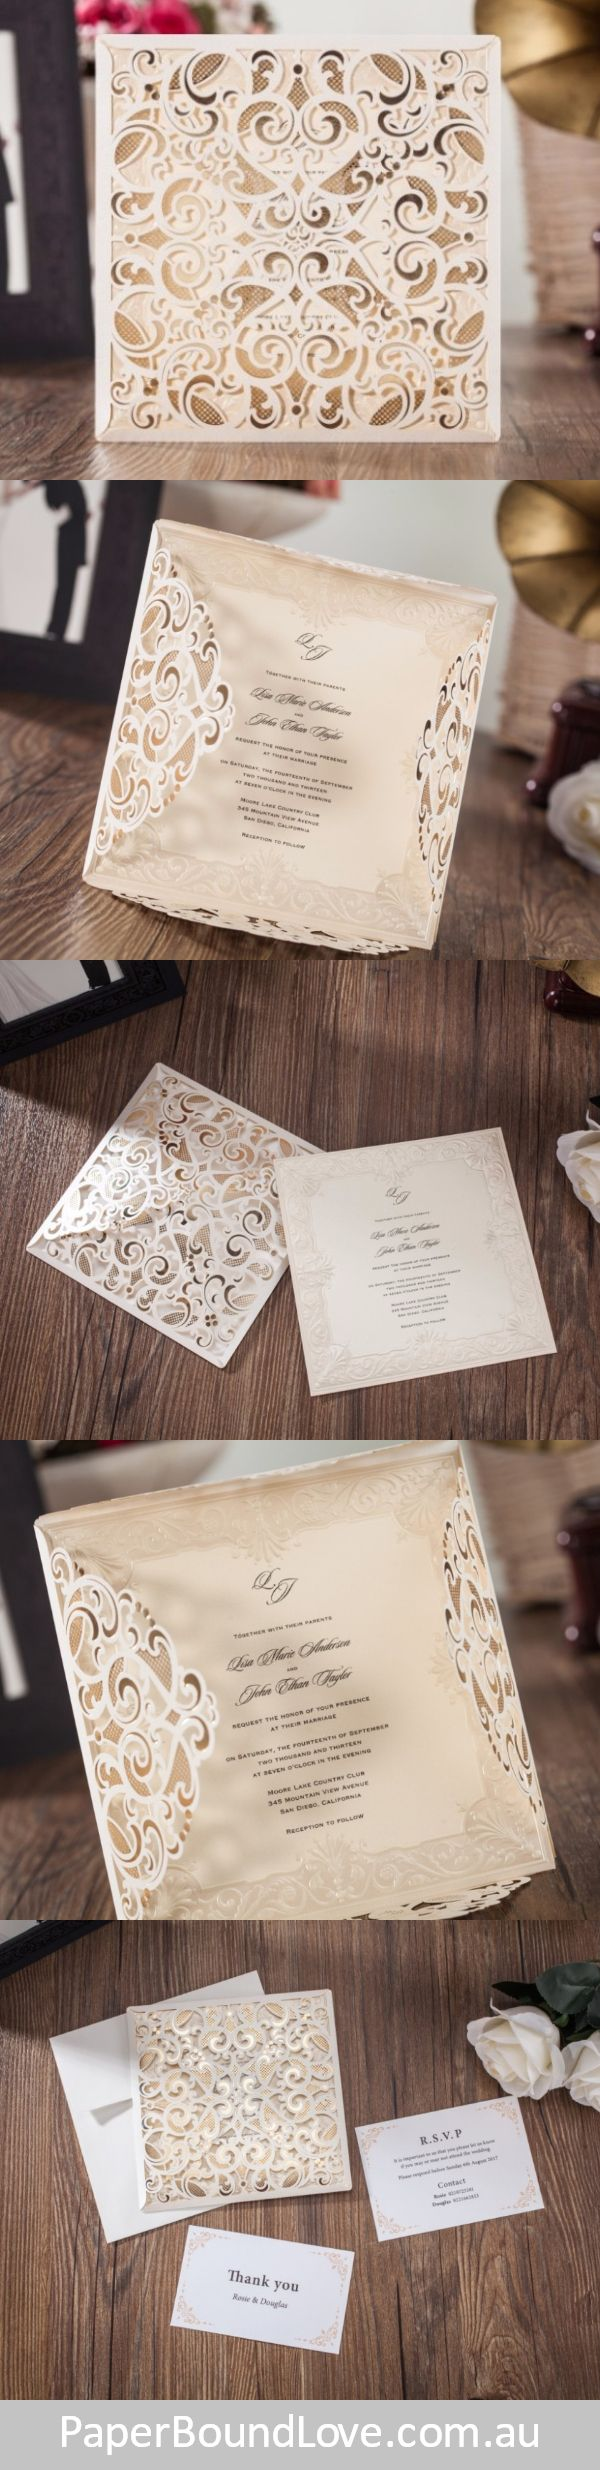 indian wedding invitation wording in gujarati%0A best resume templates free